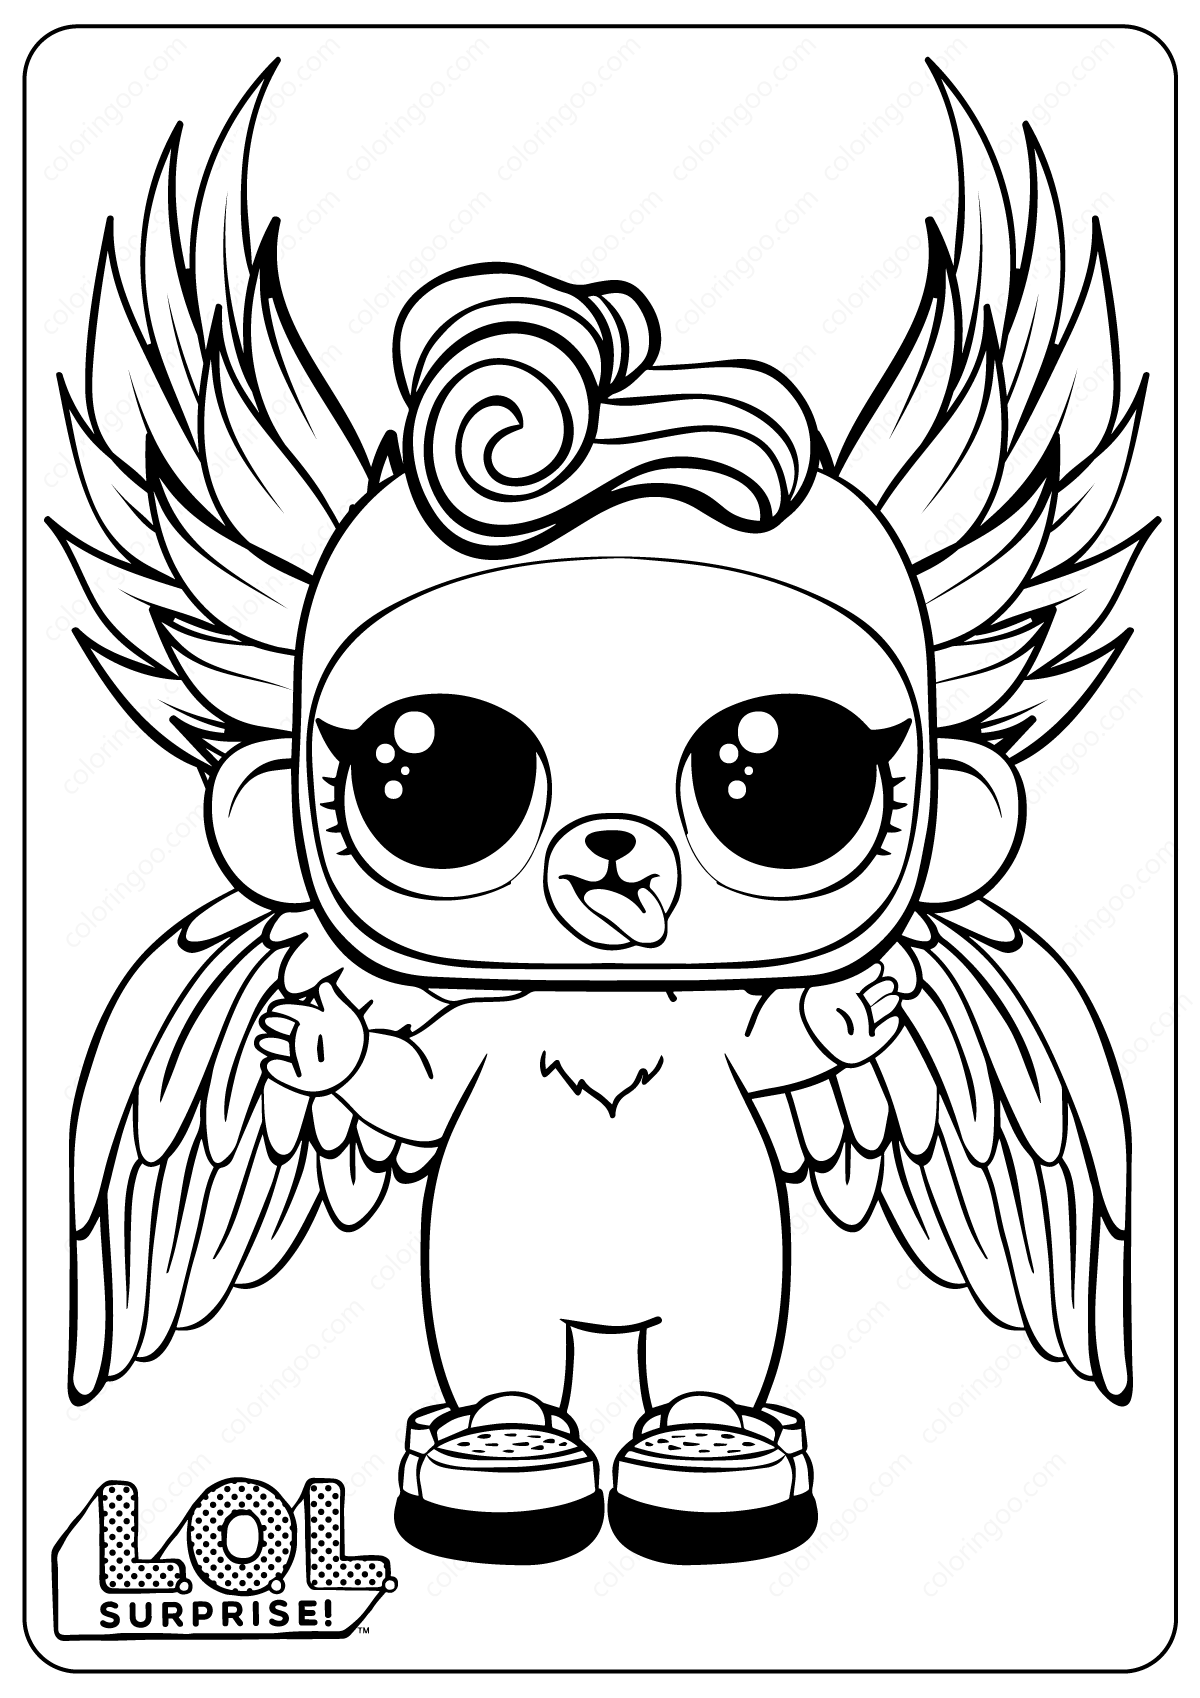 Free Printable LOL Surprise Monkey Coloring Pages  Monkey